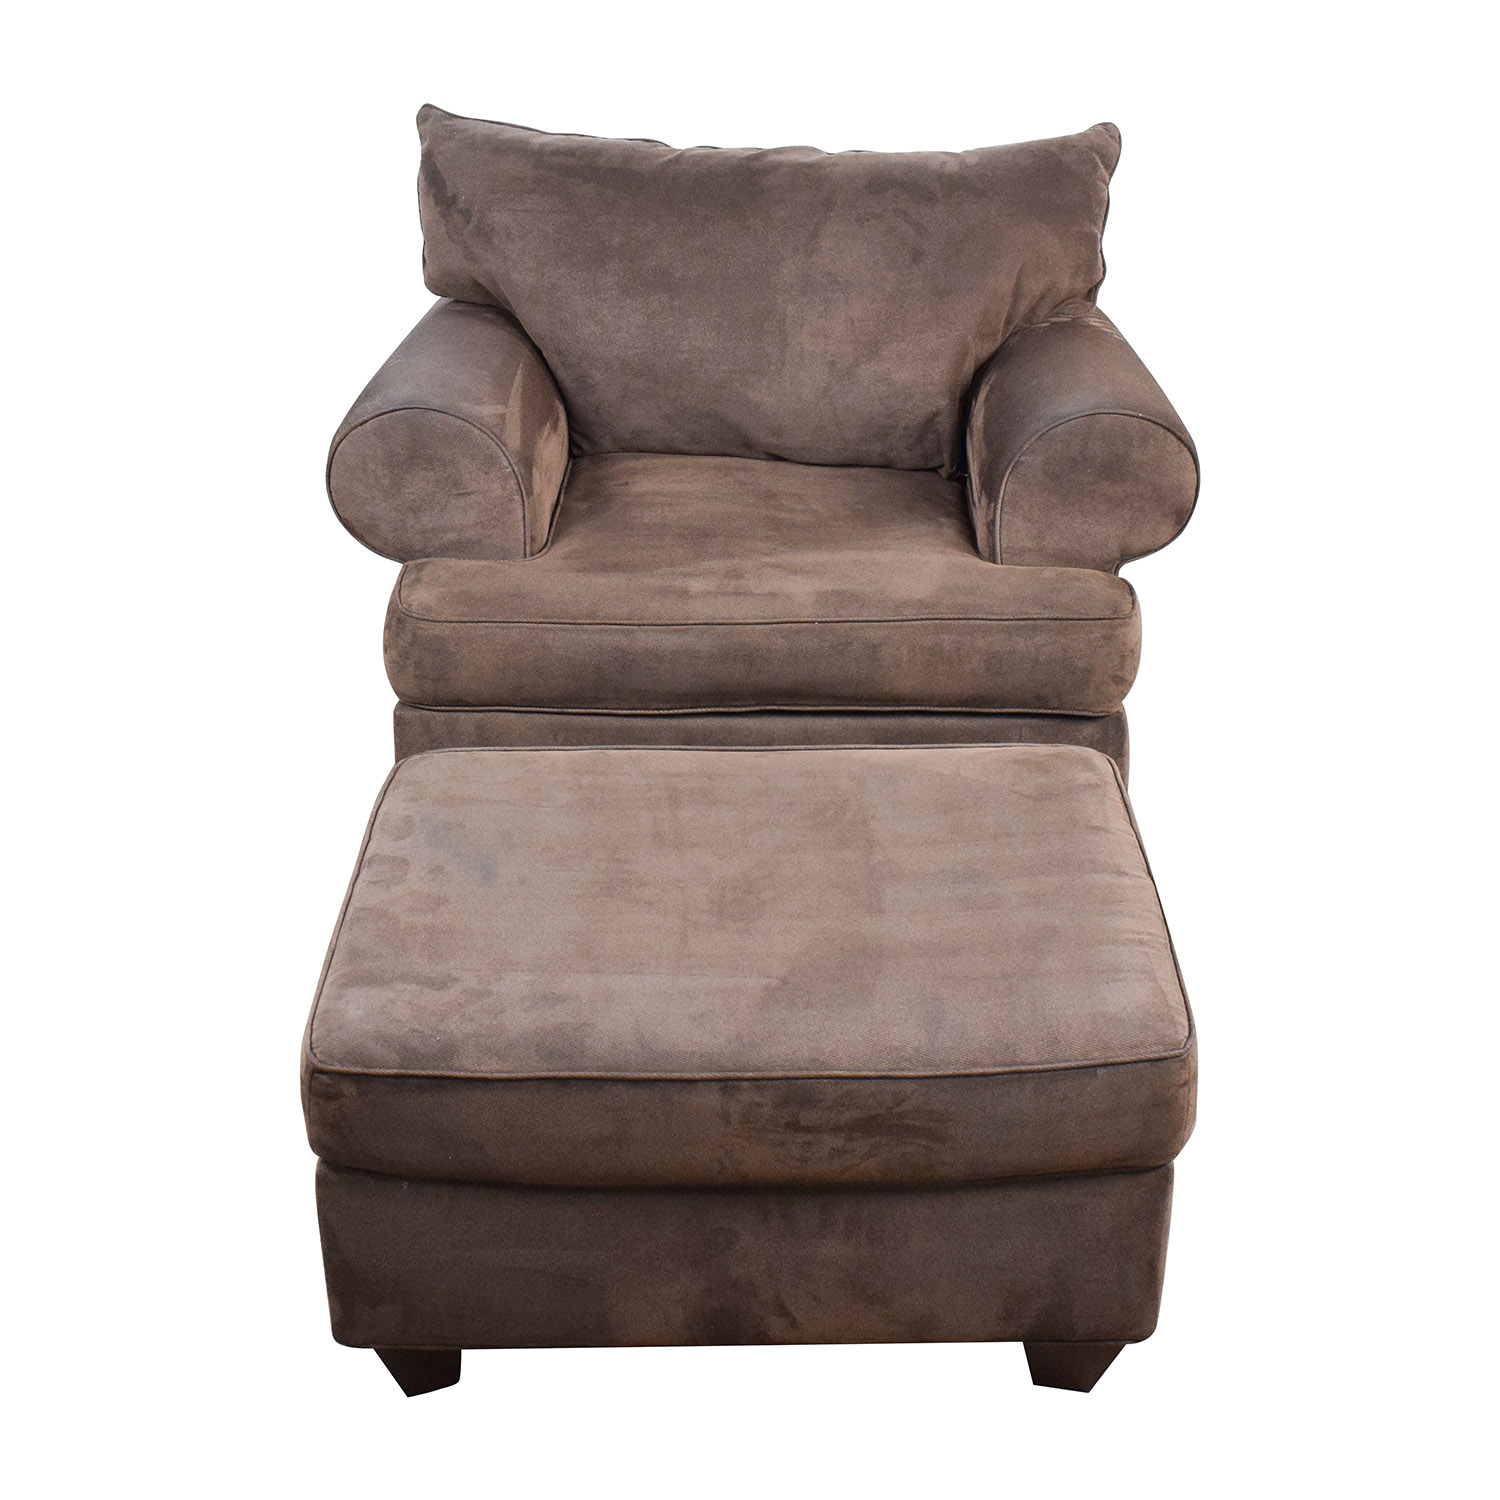 Sofa chair with ottoman ottoman chair malaysia furniture for Sofa chair malaysia